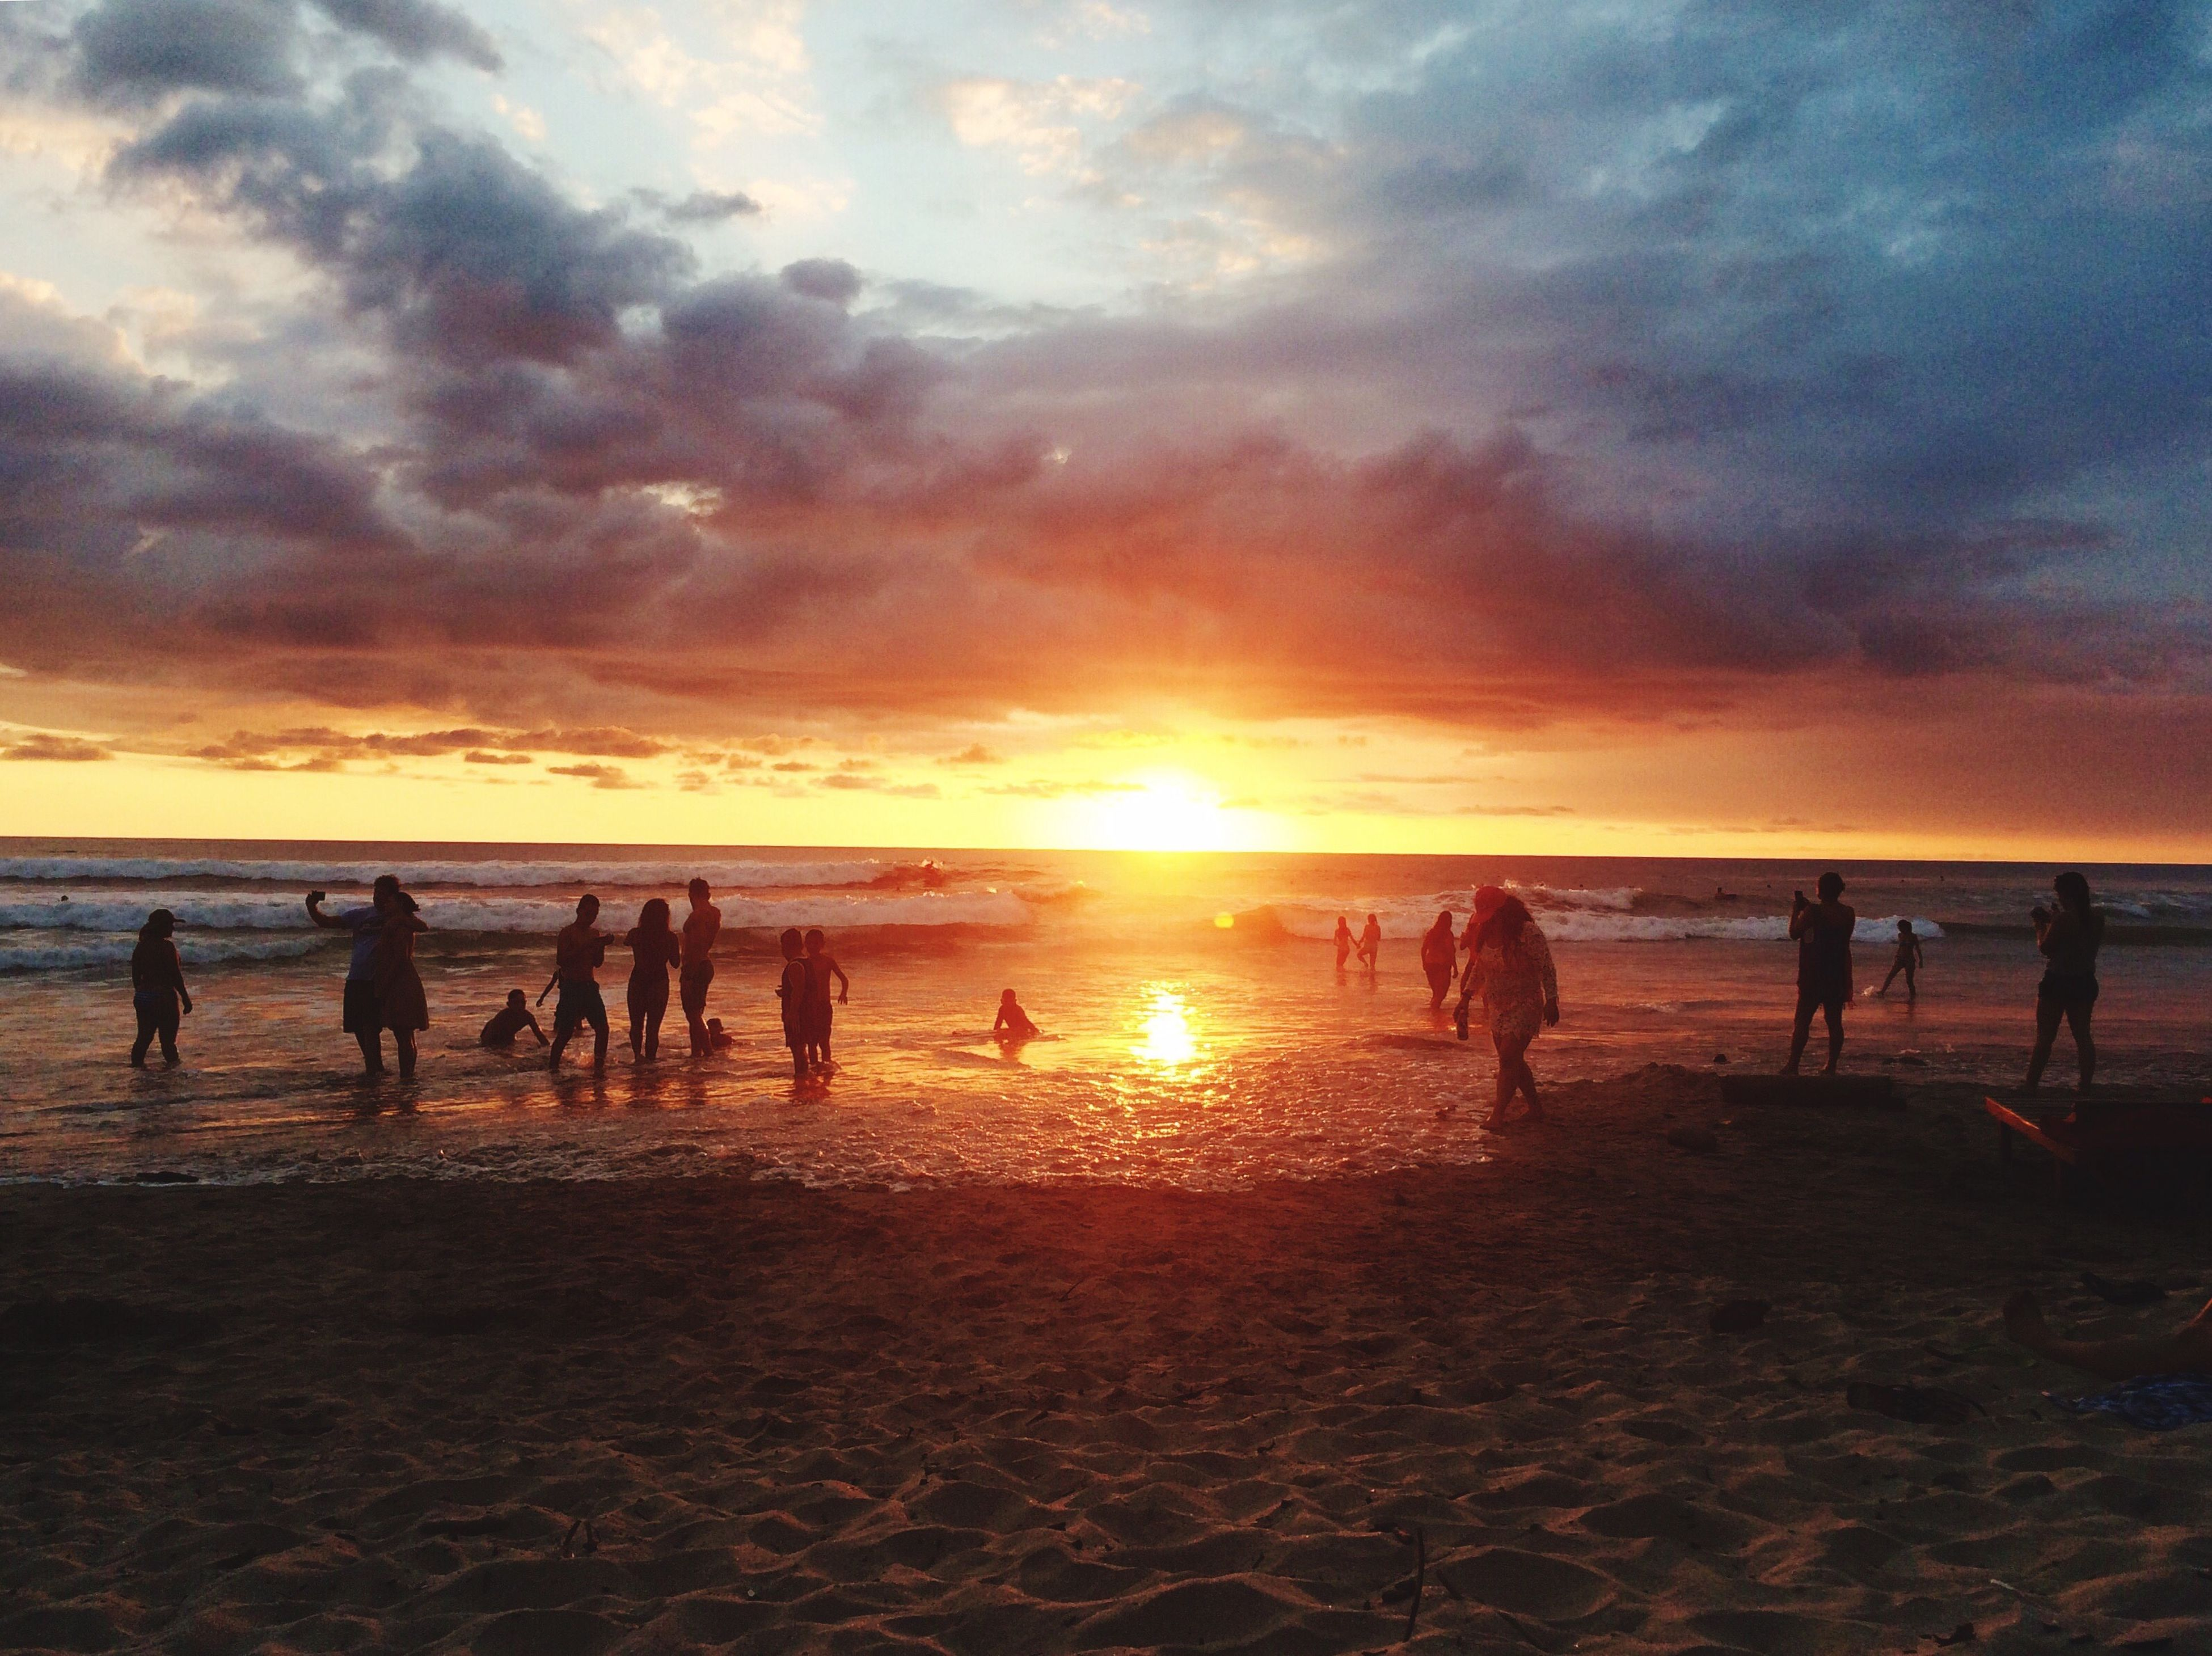 sunset, beach, sea, sky, orange color, sand, nature, real people, horizon over water, water, outdoors, beauty in nature, cloud - sky, friendship, beach volleyball, people, large group of people, adults only, togetherness, adult, day